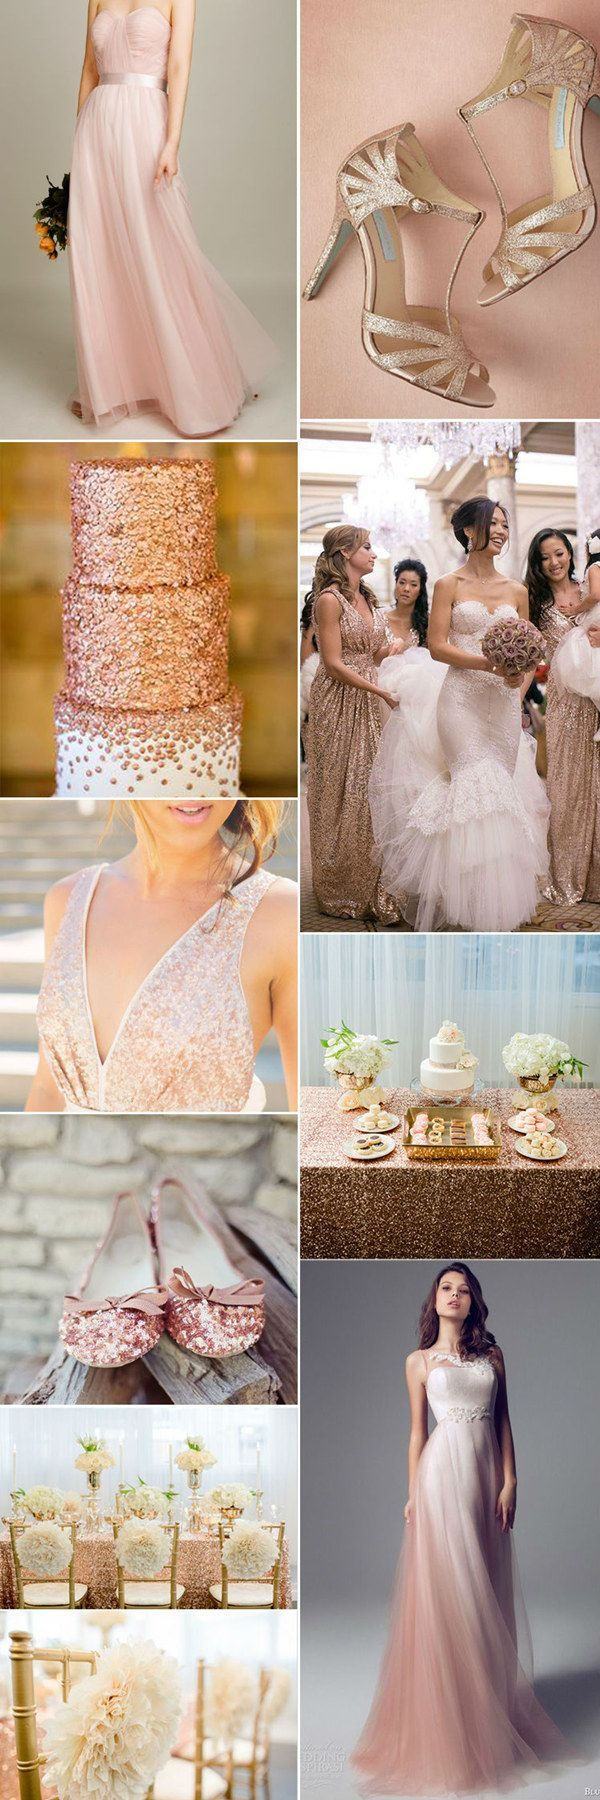 27 Best Images About Wedding Color Palettes On Pinterest